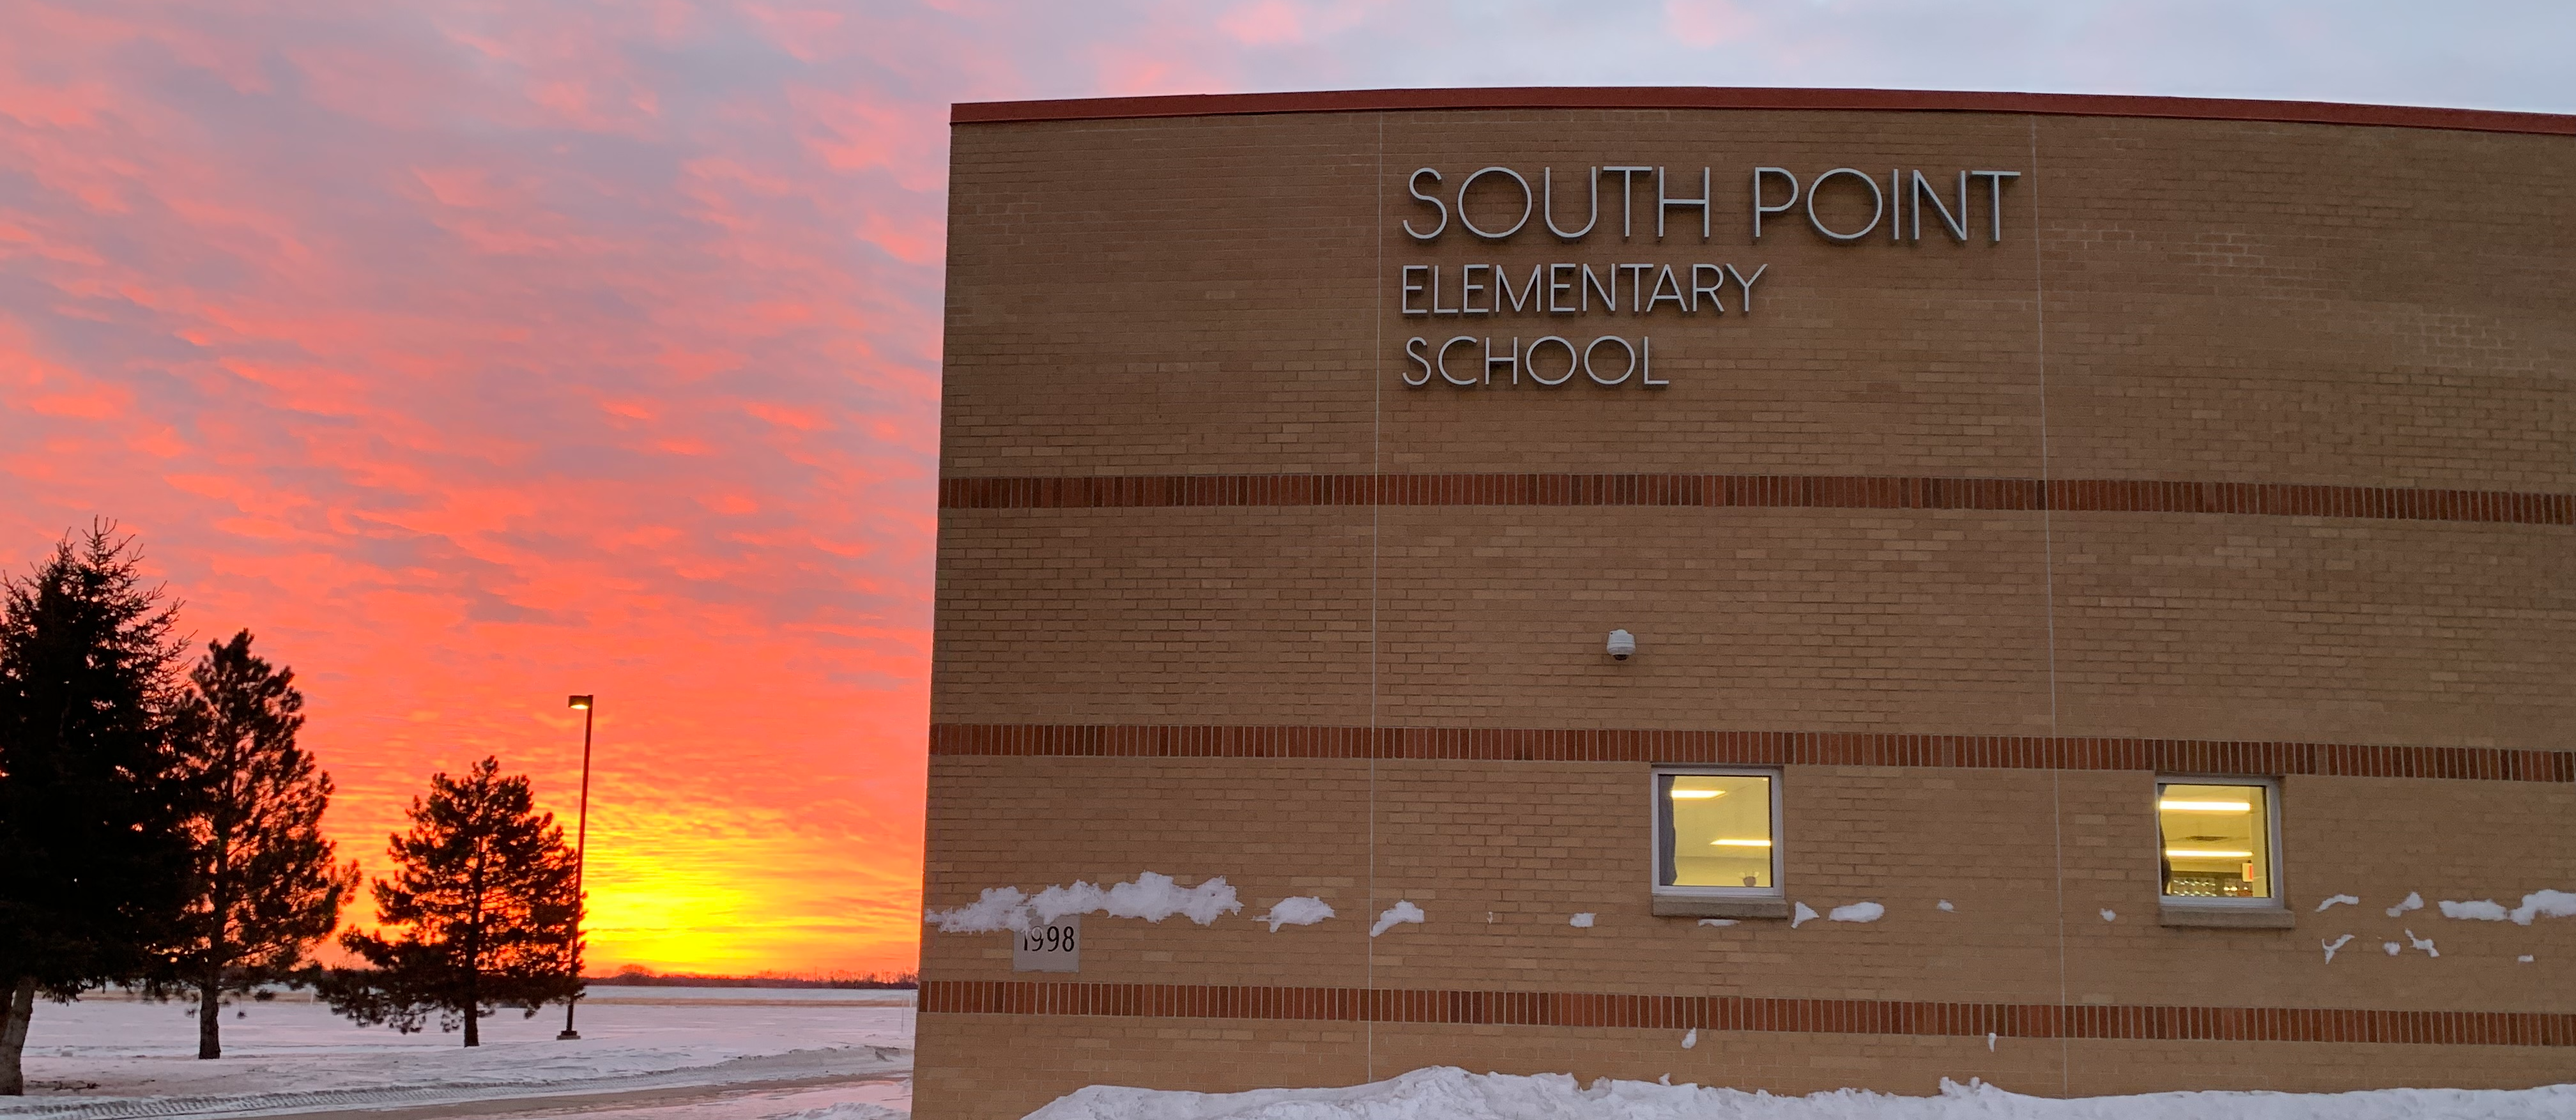 South Point Elementary School Sunset